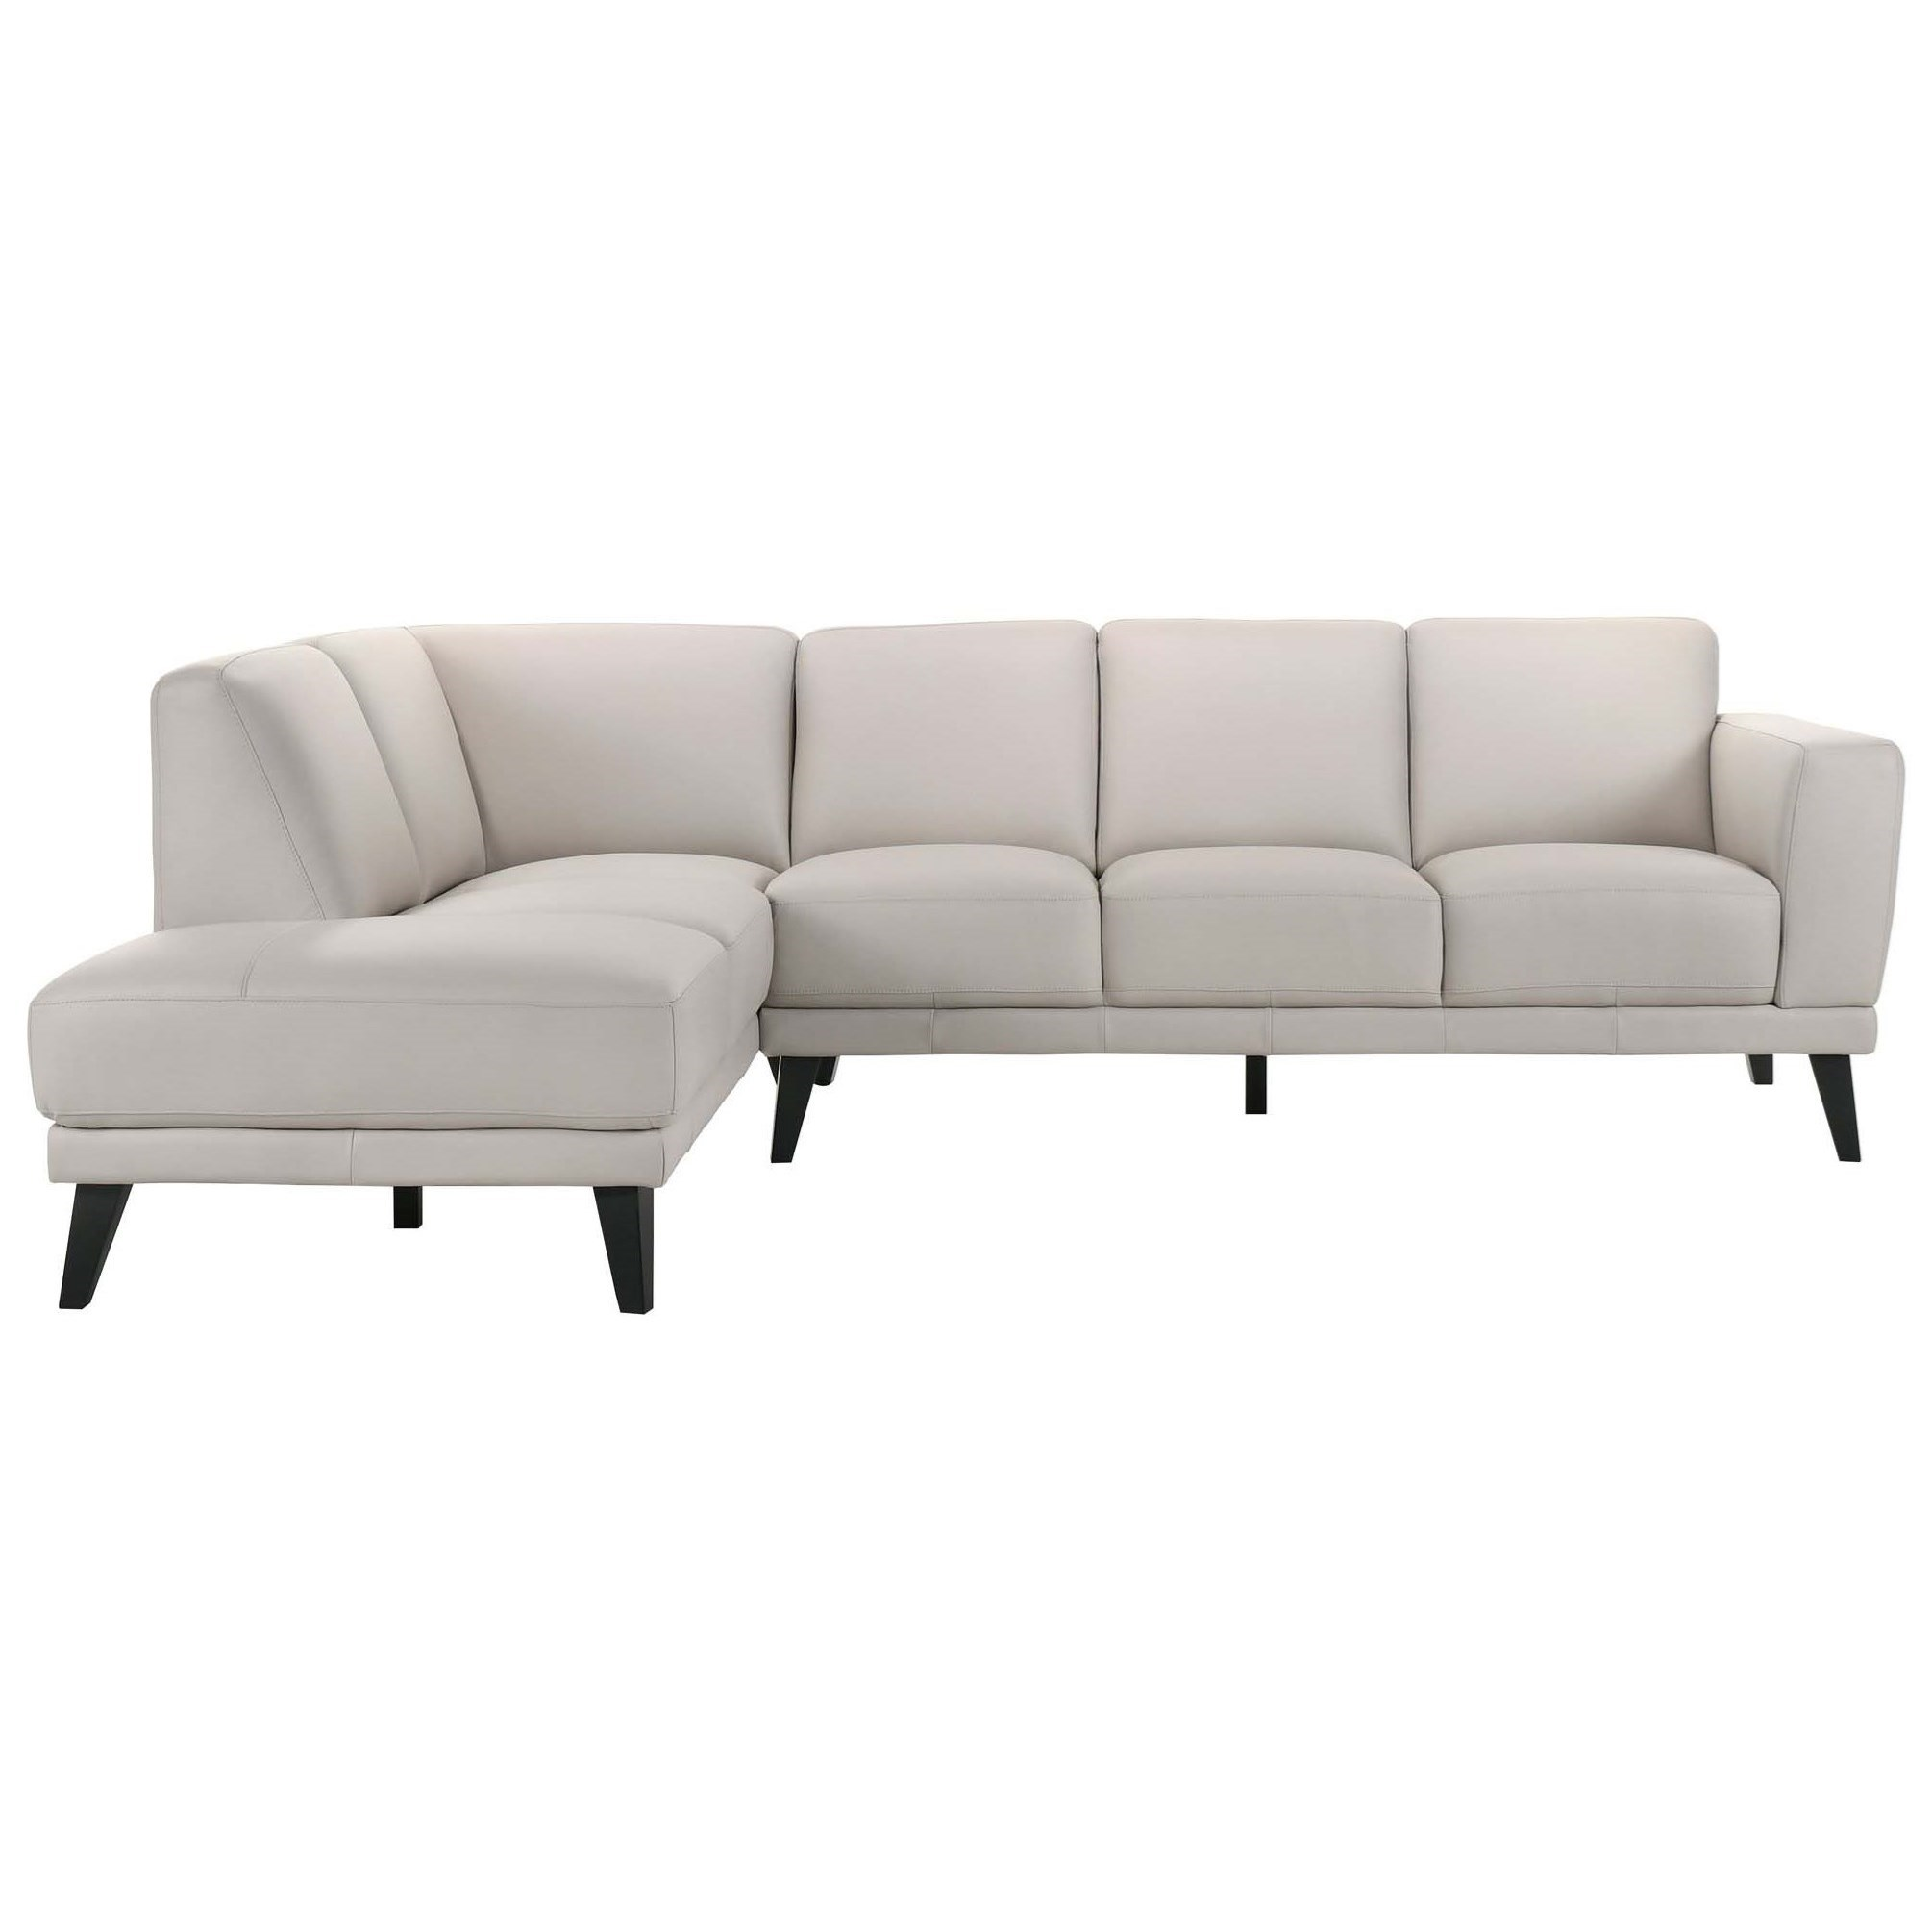 Altamura 5-Seat Sectional w/ LAF Chaise by New Classic at H.L. Stephens